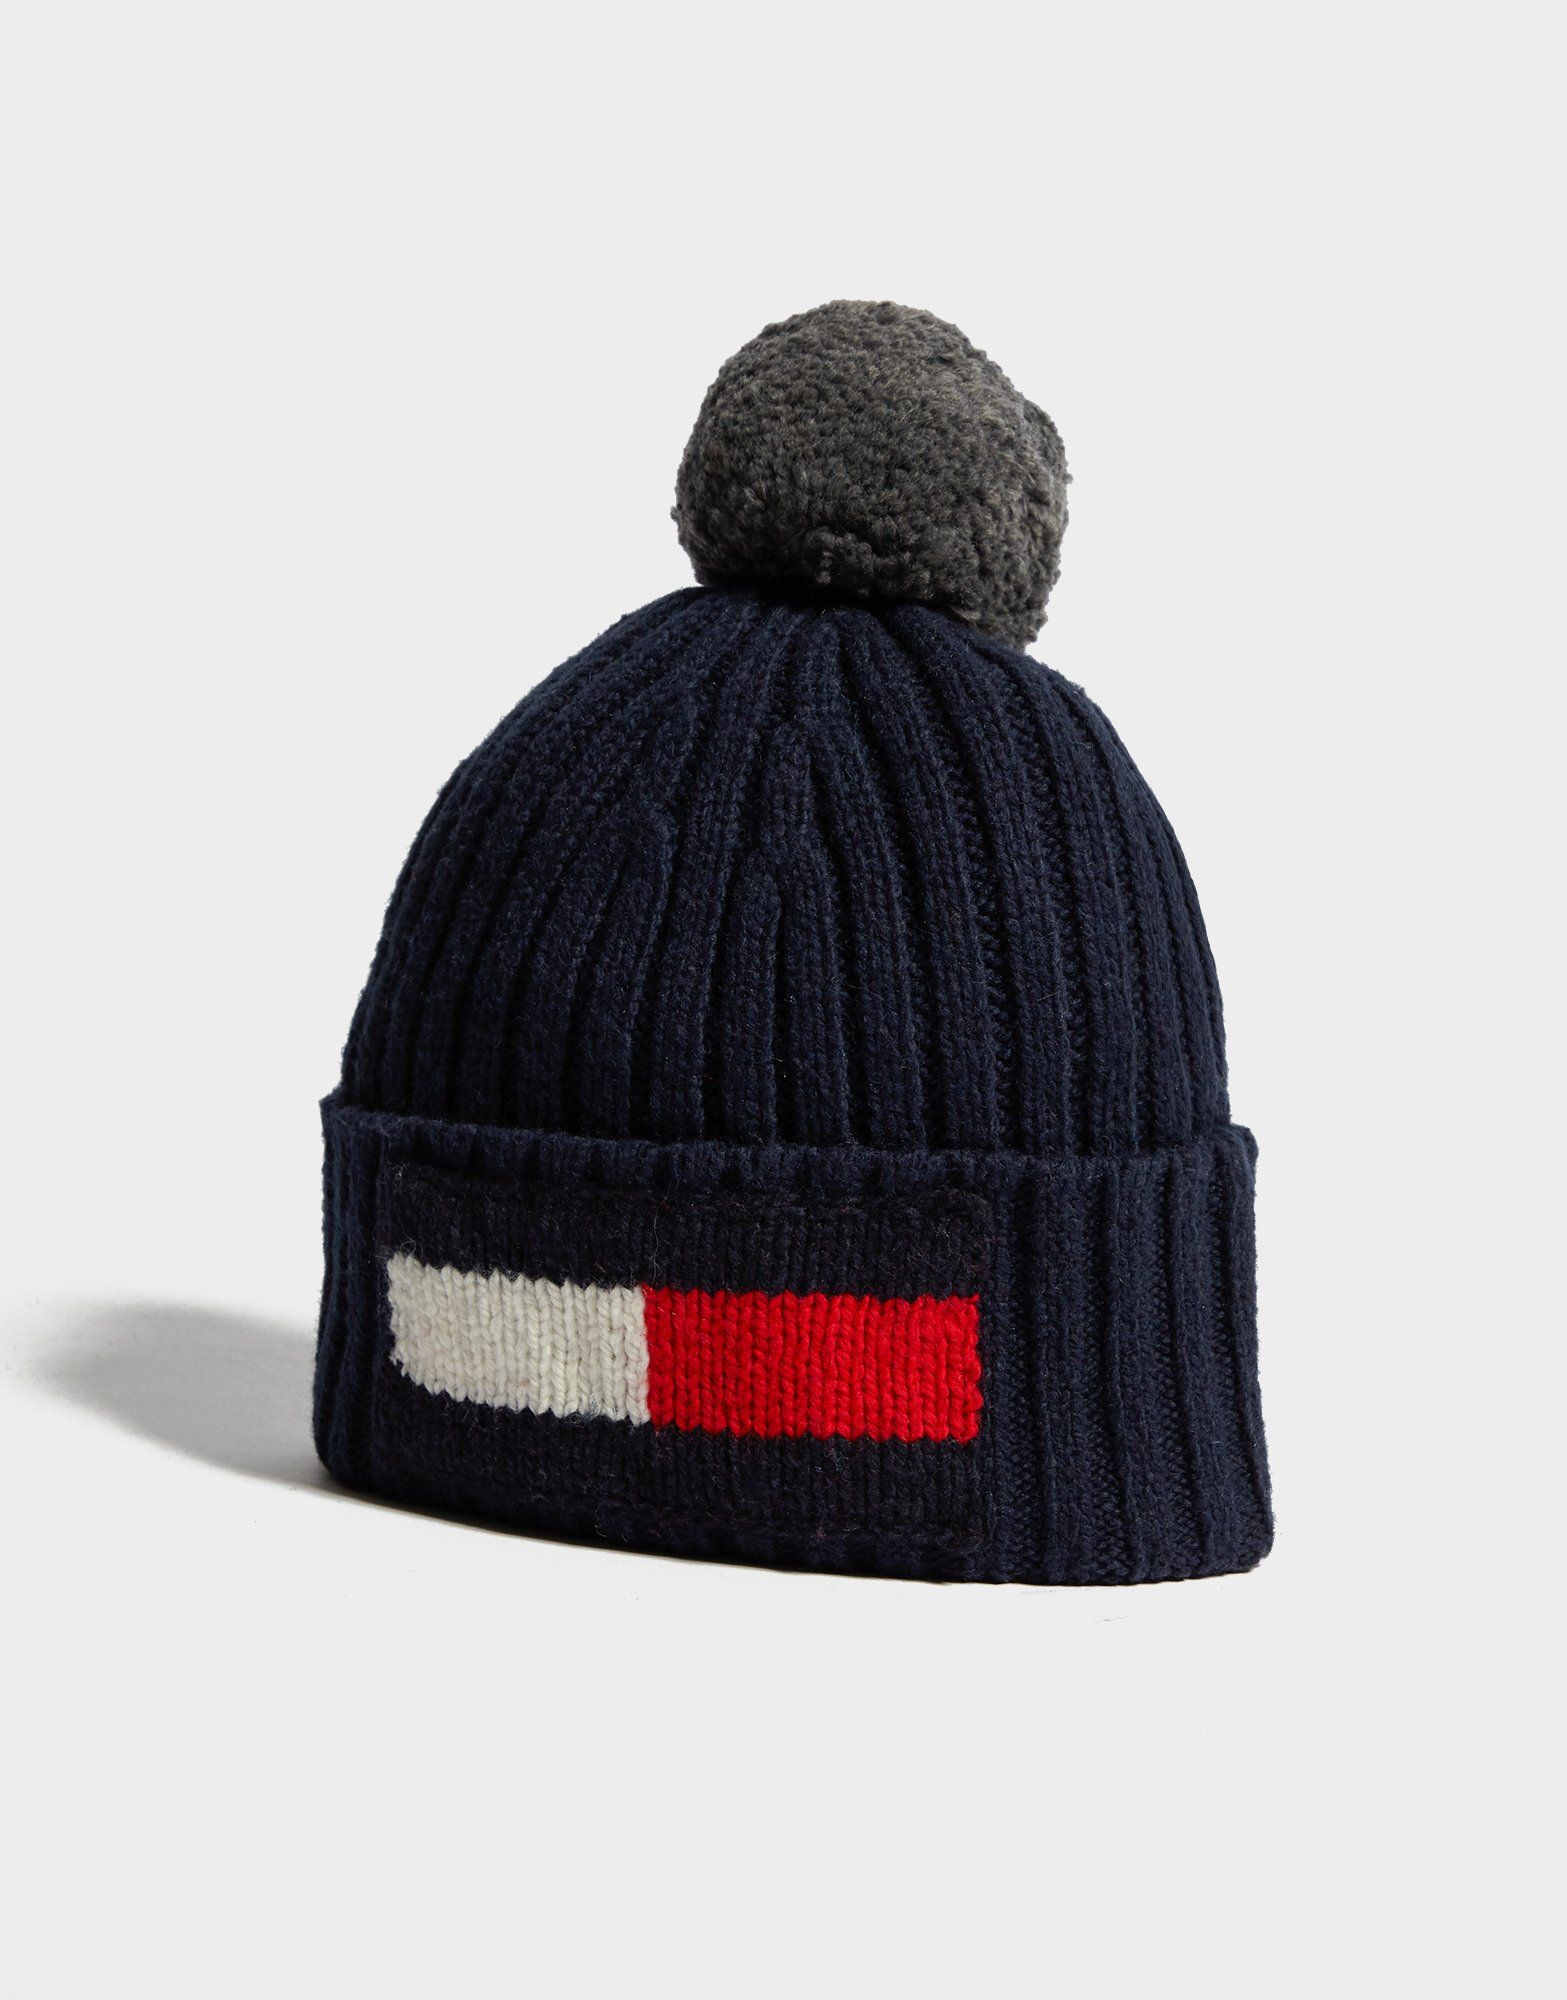 004036d14c72 Men - Knitted Hats   Beanies Tommy Hilfiger   JD Sports